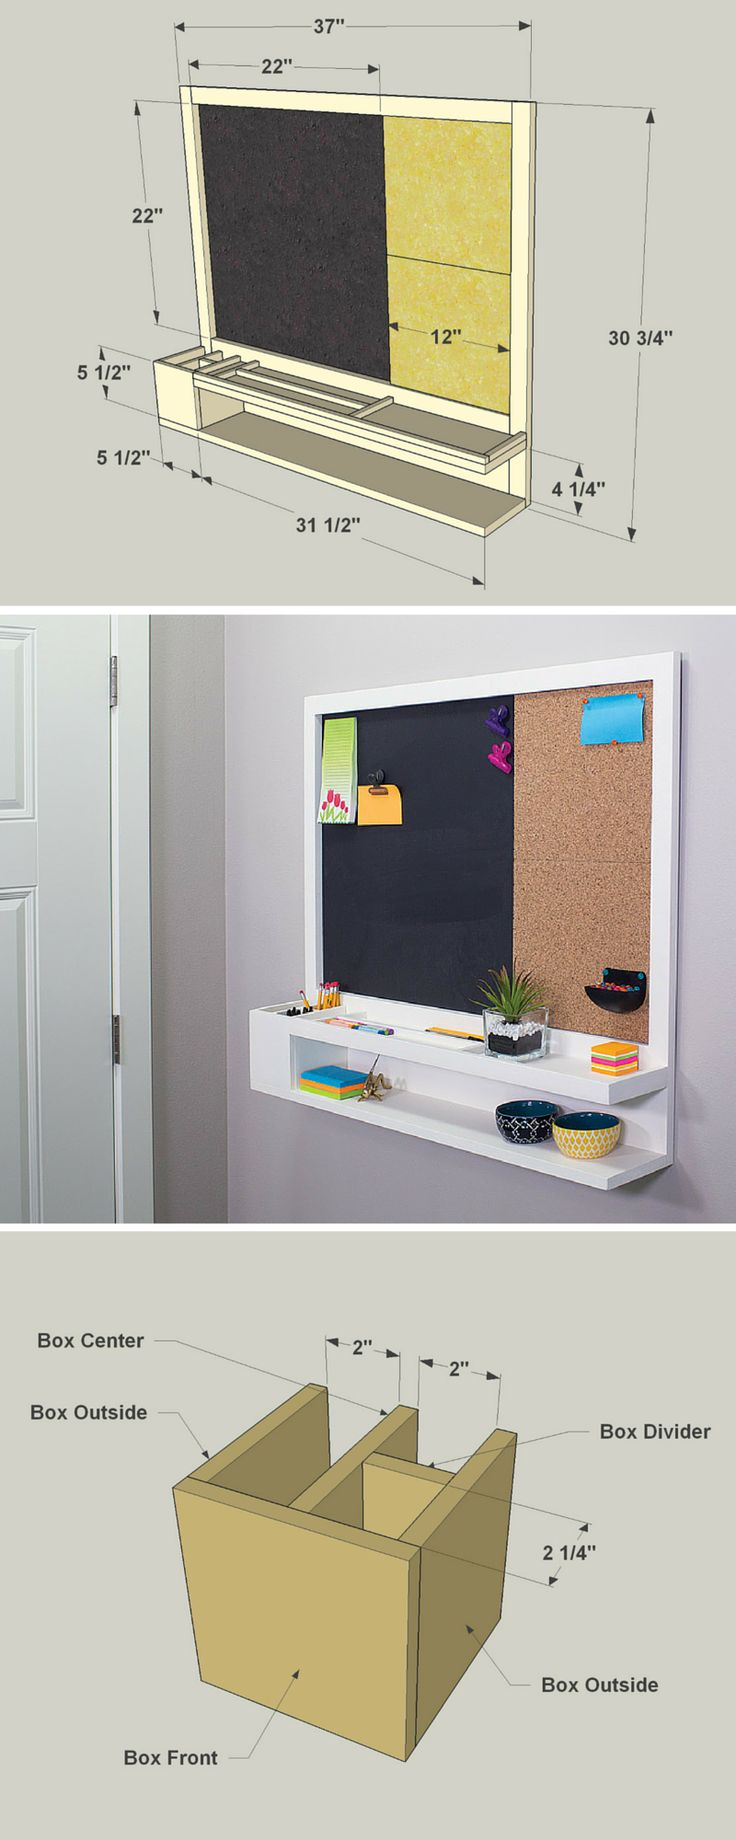 Make use of a blank wall in your entryway or kitchen with a message center that will keep the whole family organized and informed. It features storage, a magnetic chalkboard, and a cork board for pinning up notes. FREE PLANS at buildsomething.com